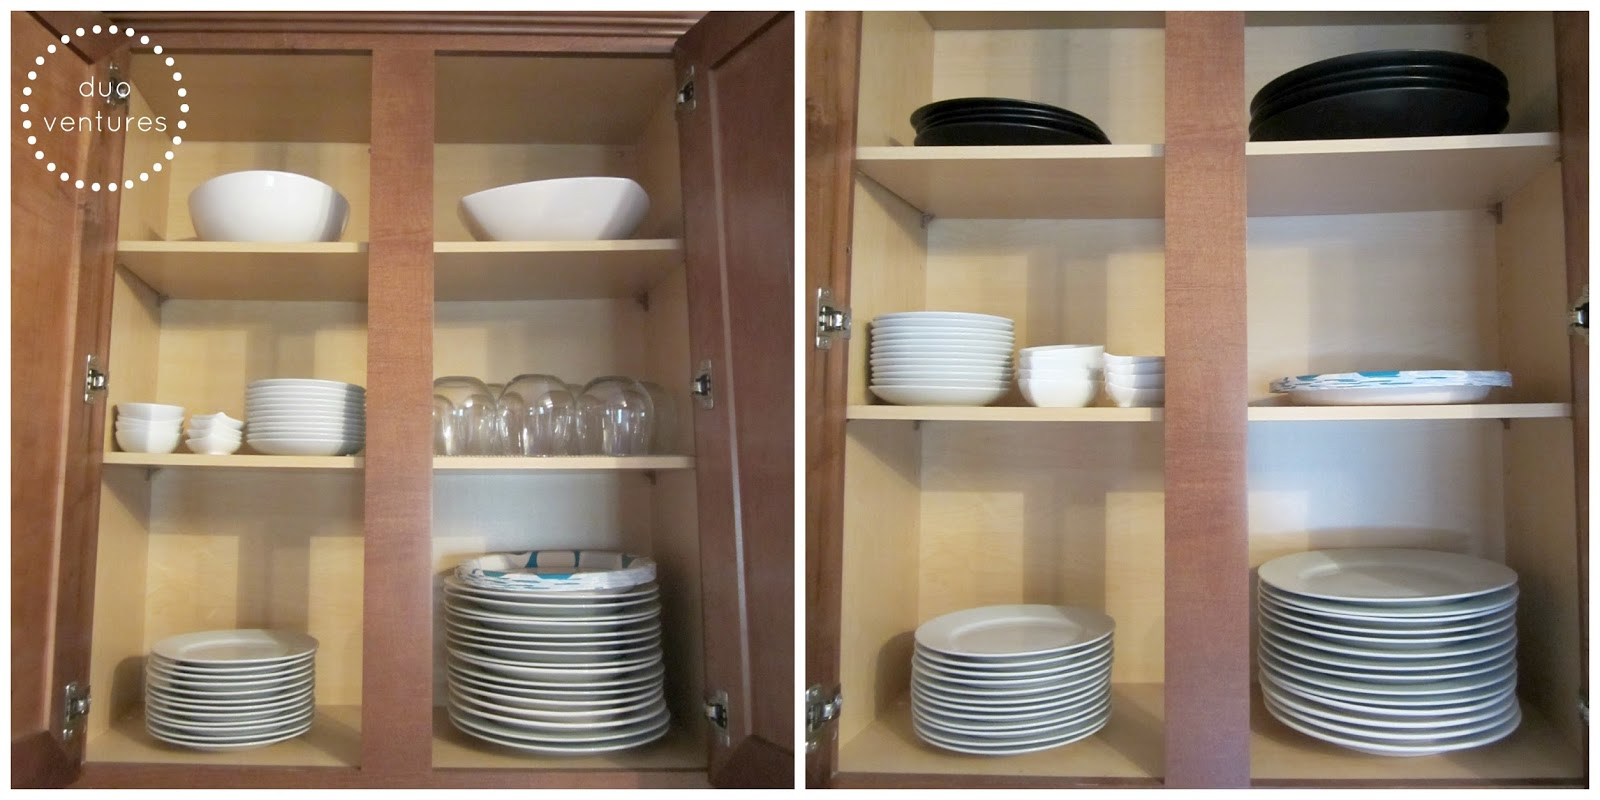 kitchen cabinets from home depot drawer replacement duo ventures: organizing: the